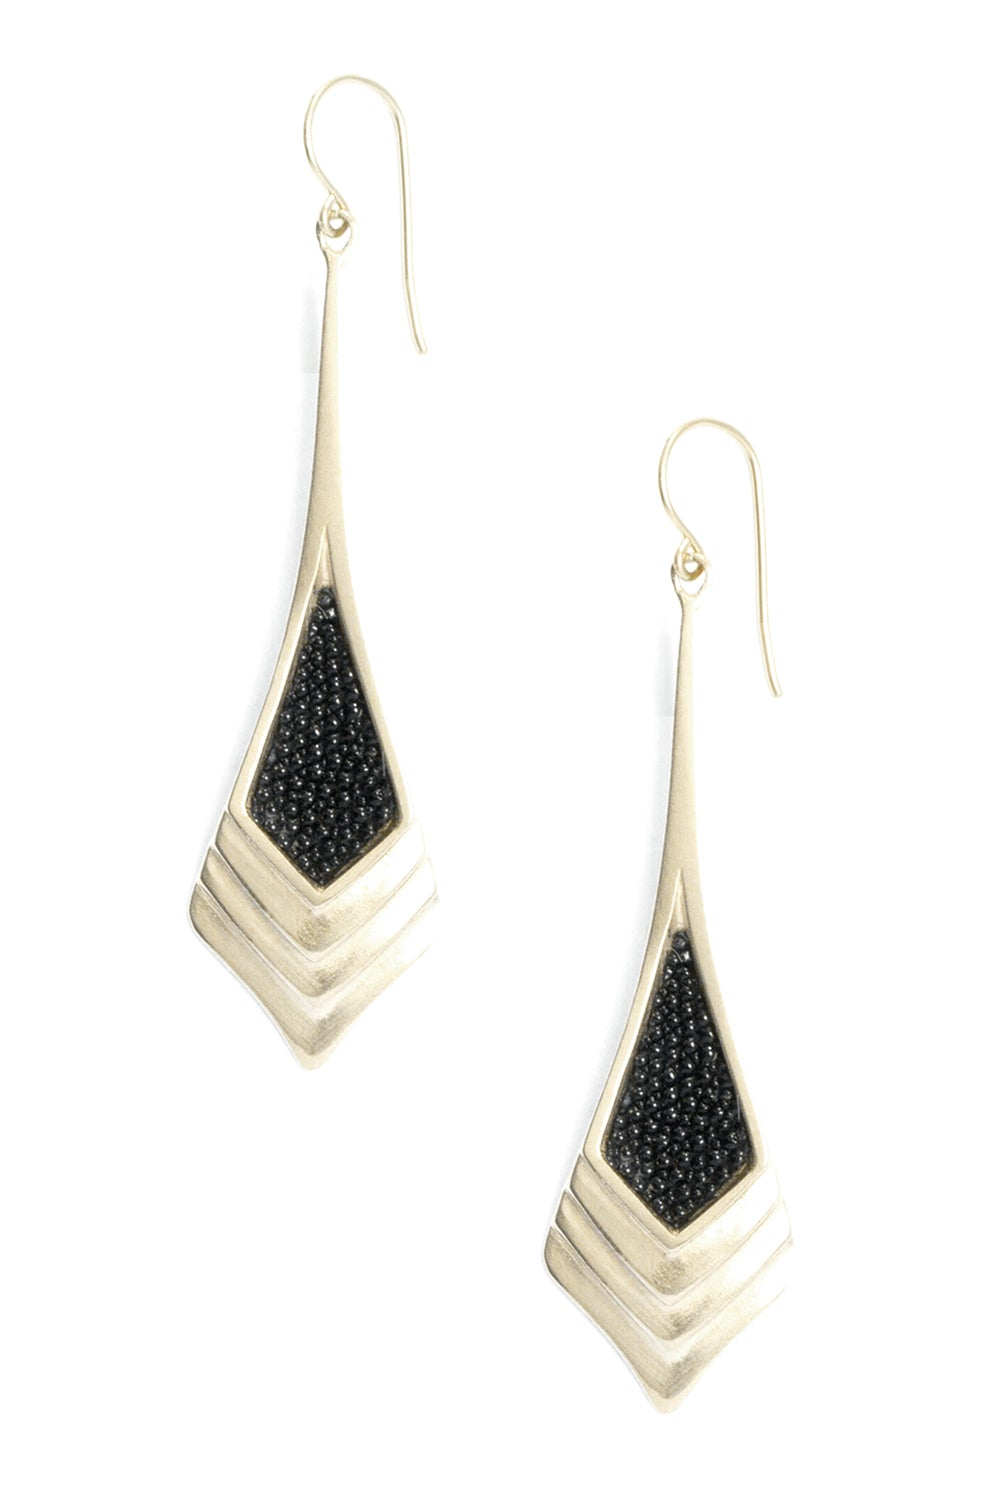 CHRYSLER TOWER EARRINGS